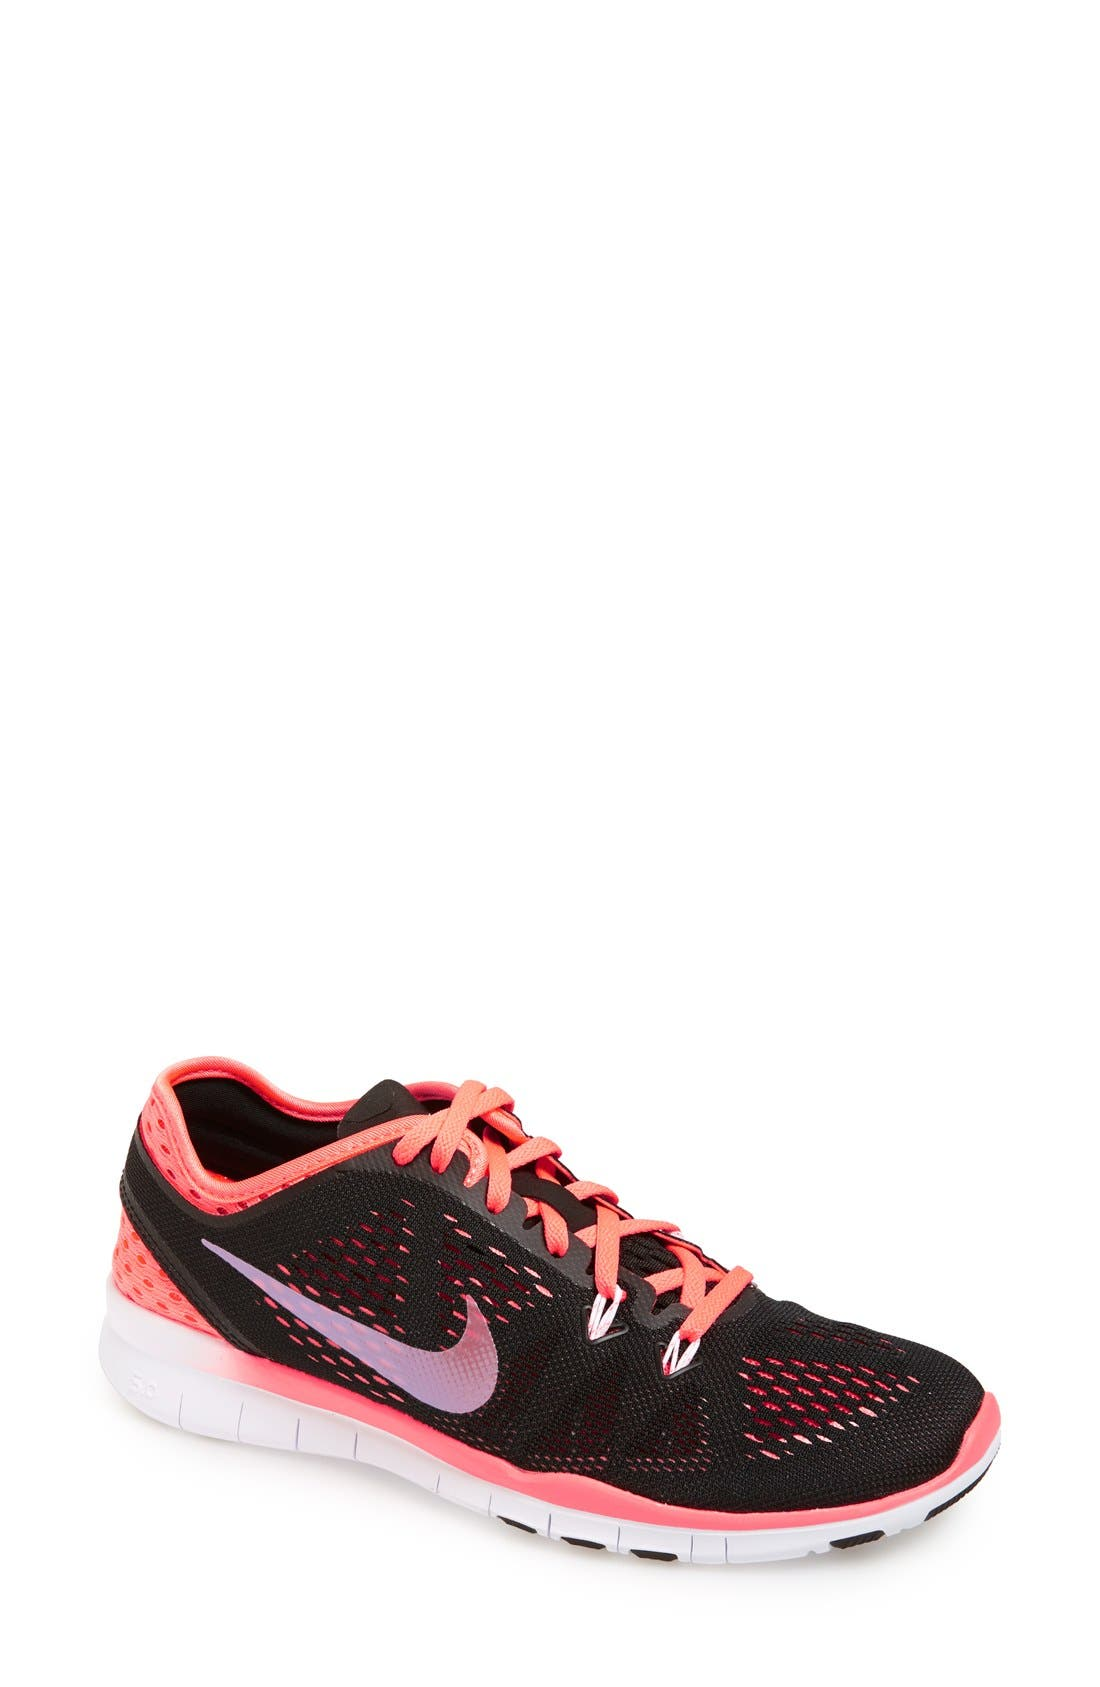 'Free 5.0 TR Fit 5 Breathe' Training Shoe, Main, color, 003